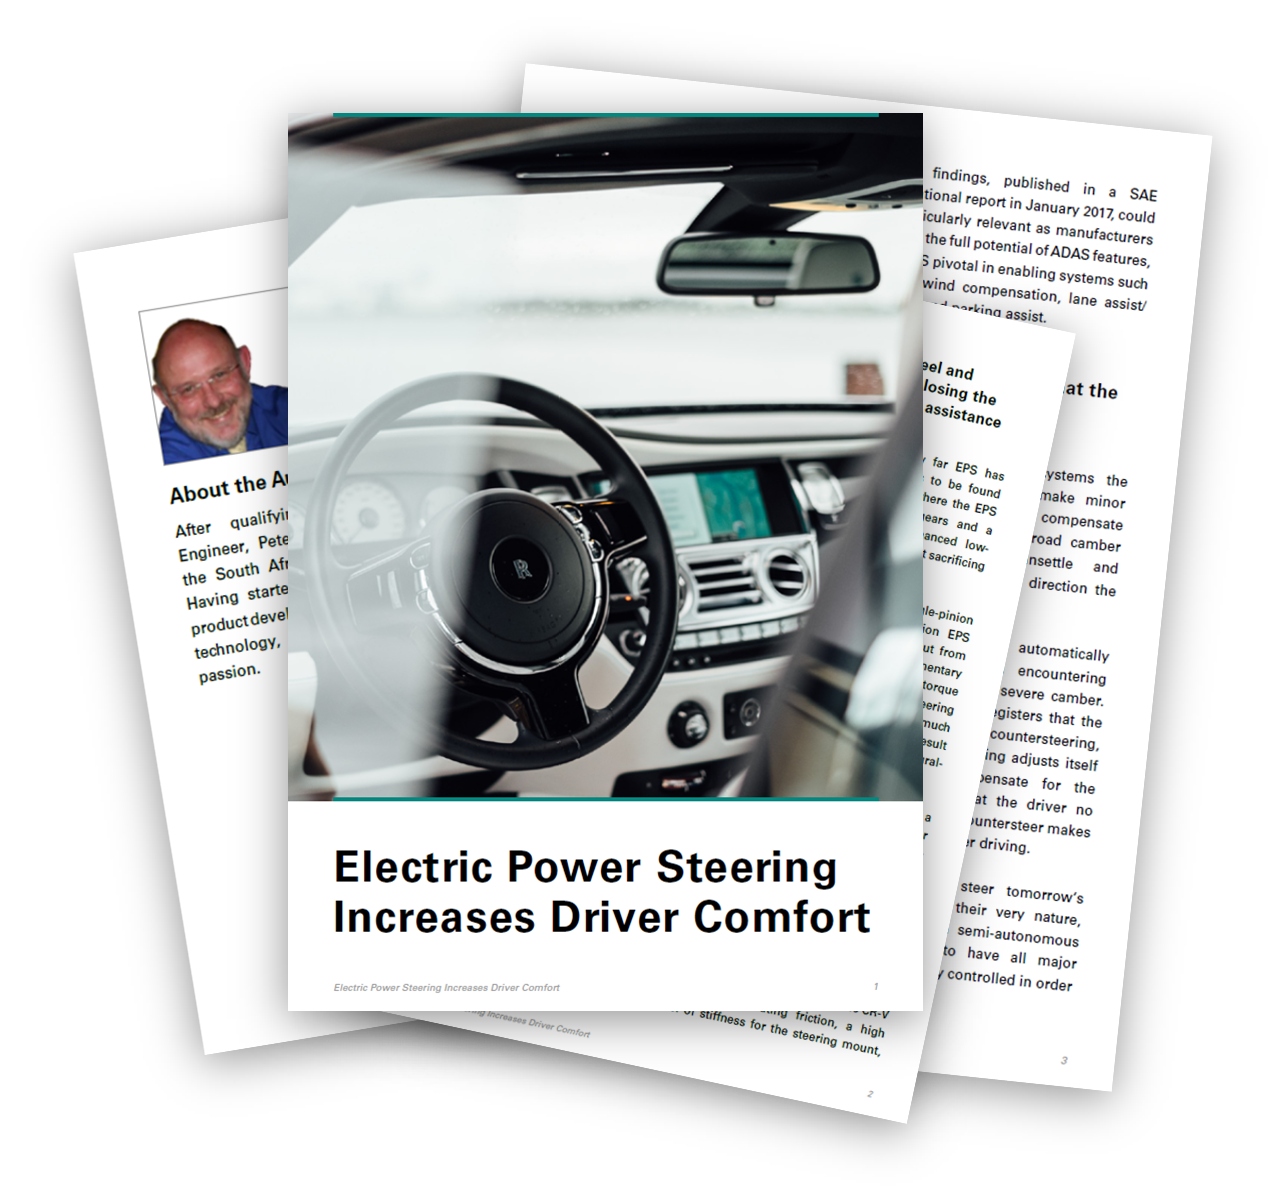 Electric Power Steering for increased driver comfort